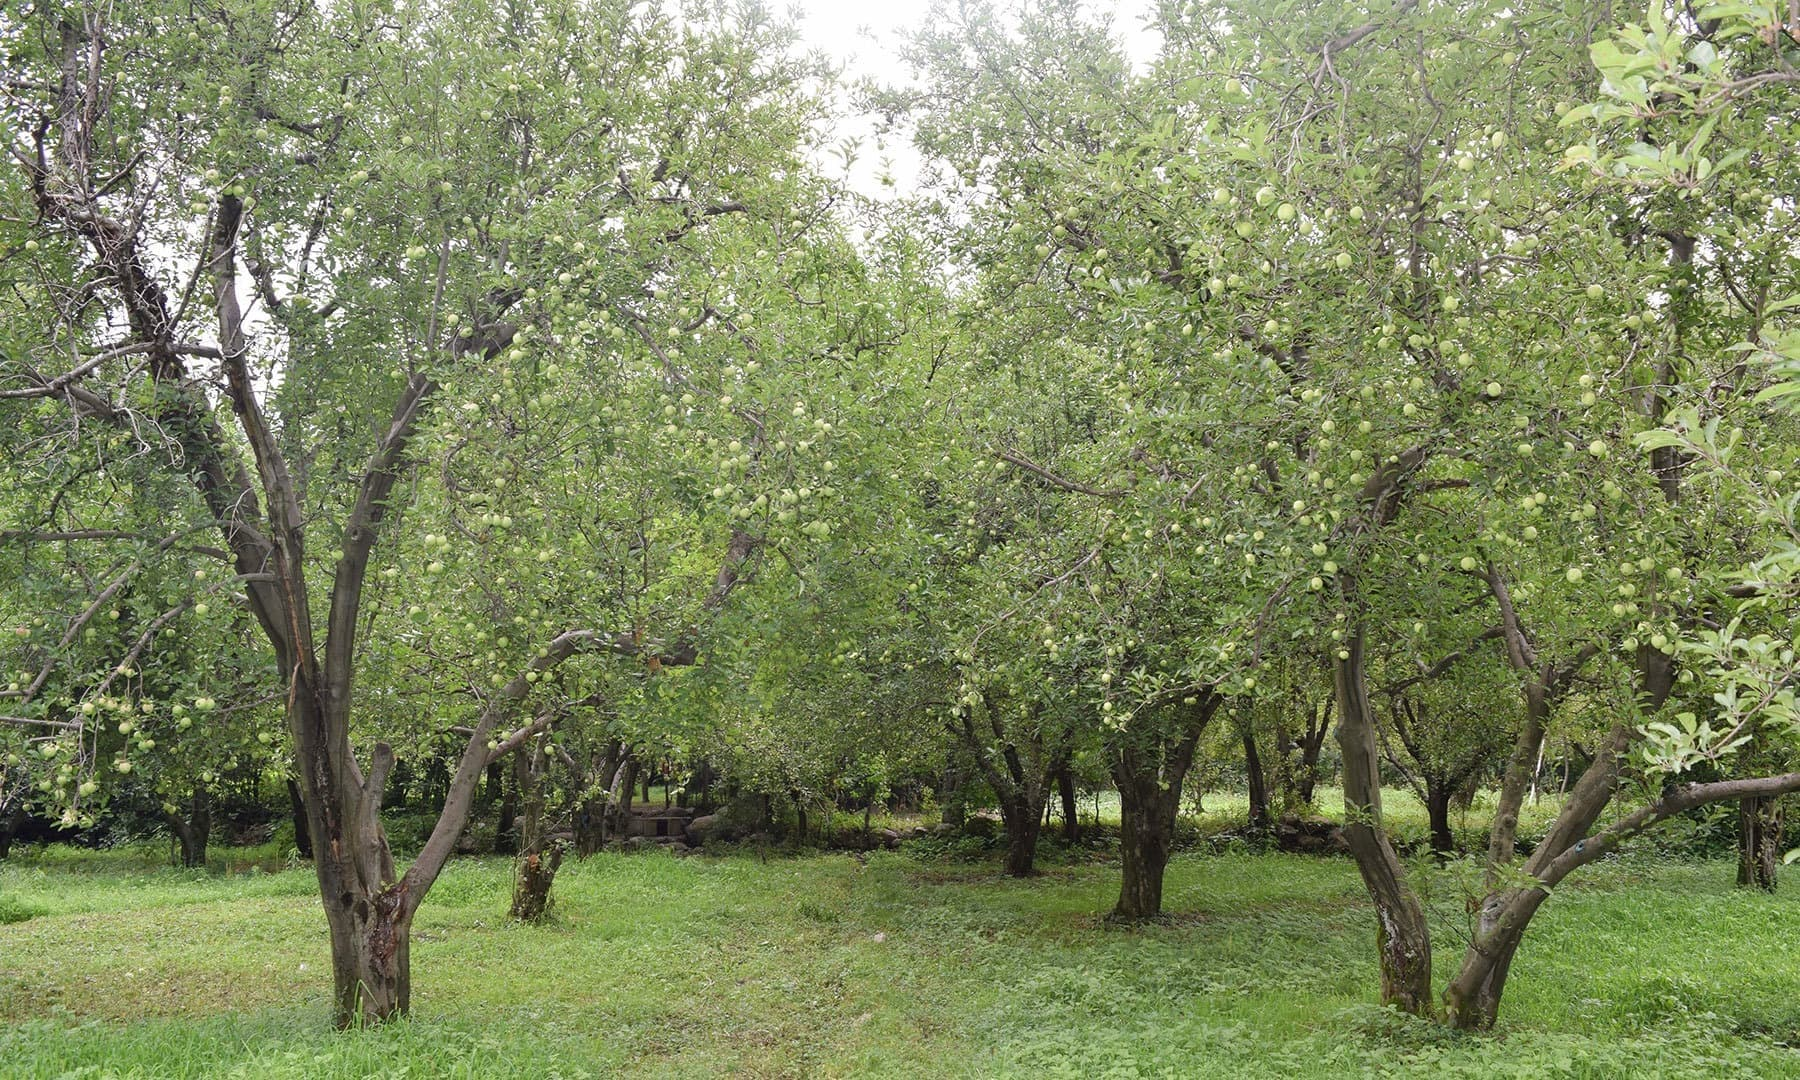 A beautiful view of an orchard located in middle of the village.